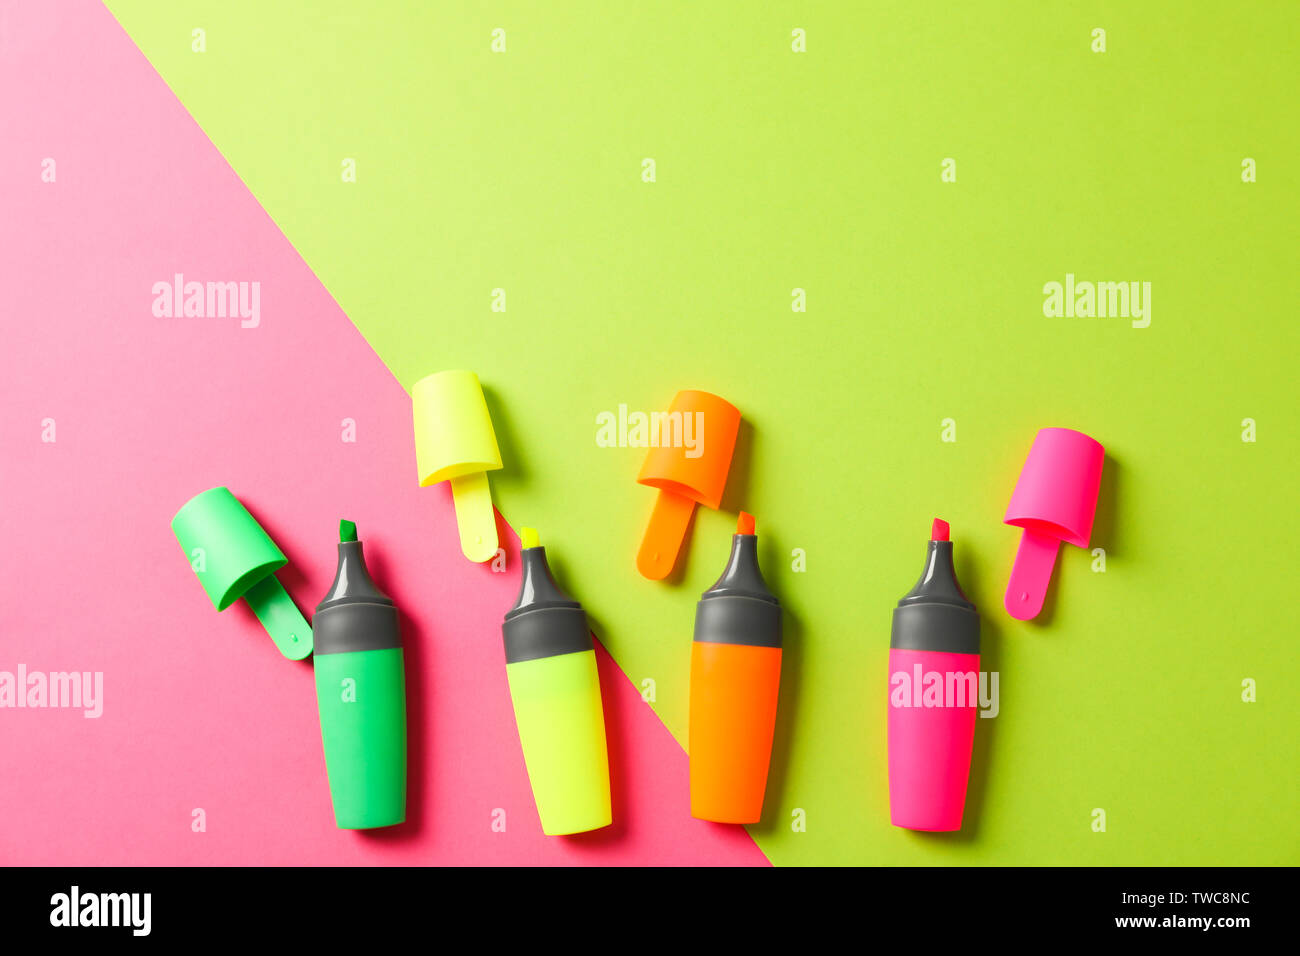 Open highlighters on two tone background, space for text - Stock Image